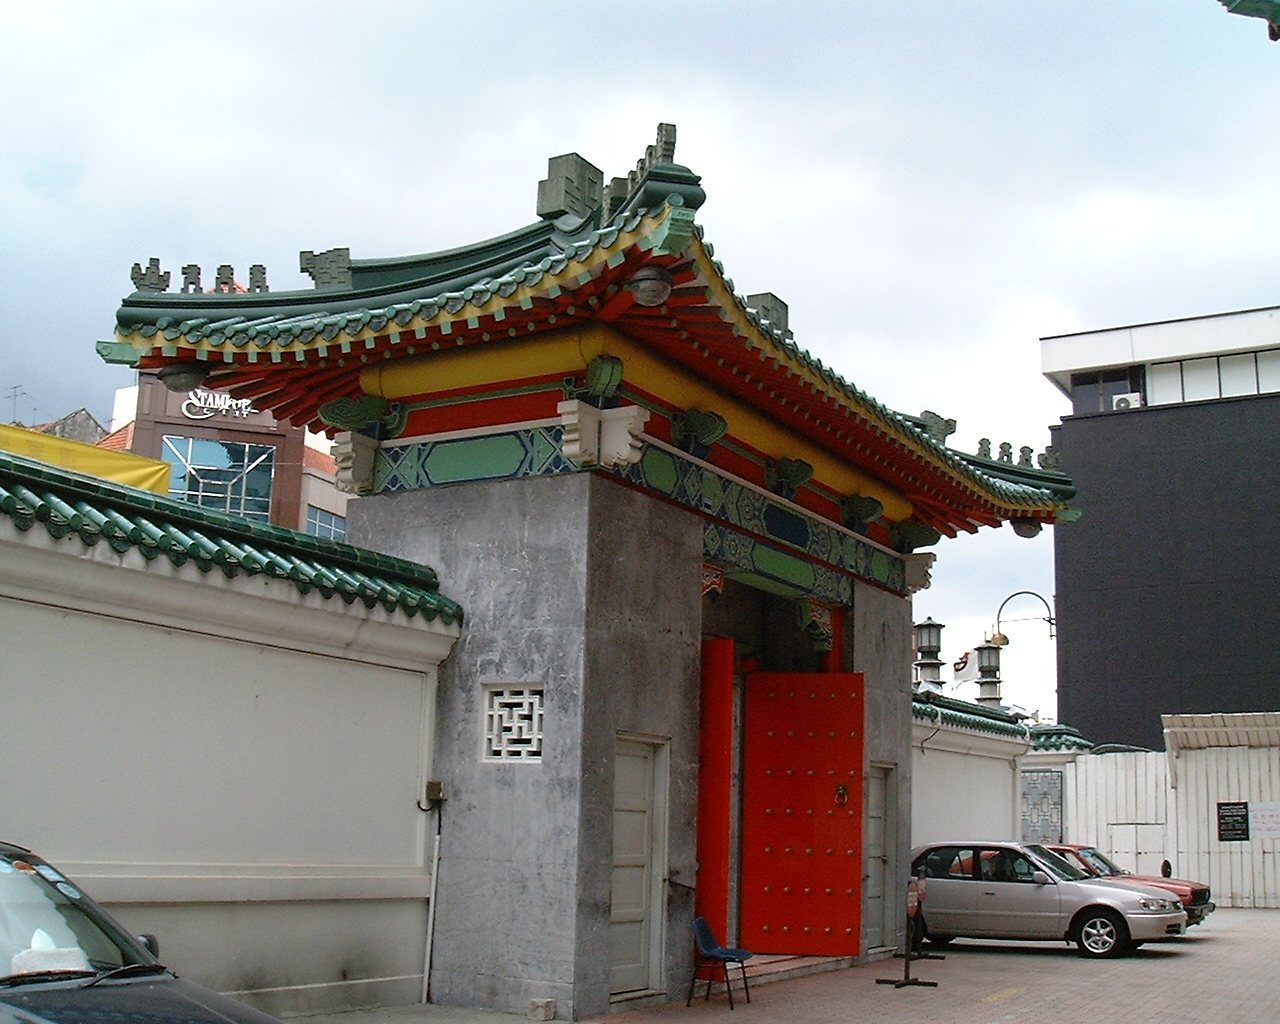 Back view of the main gate